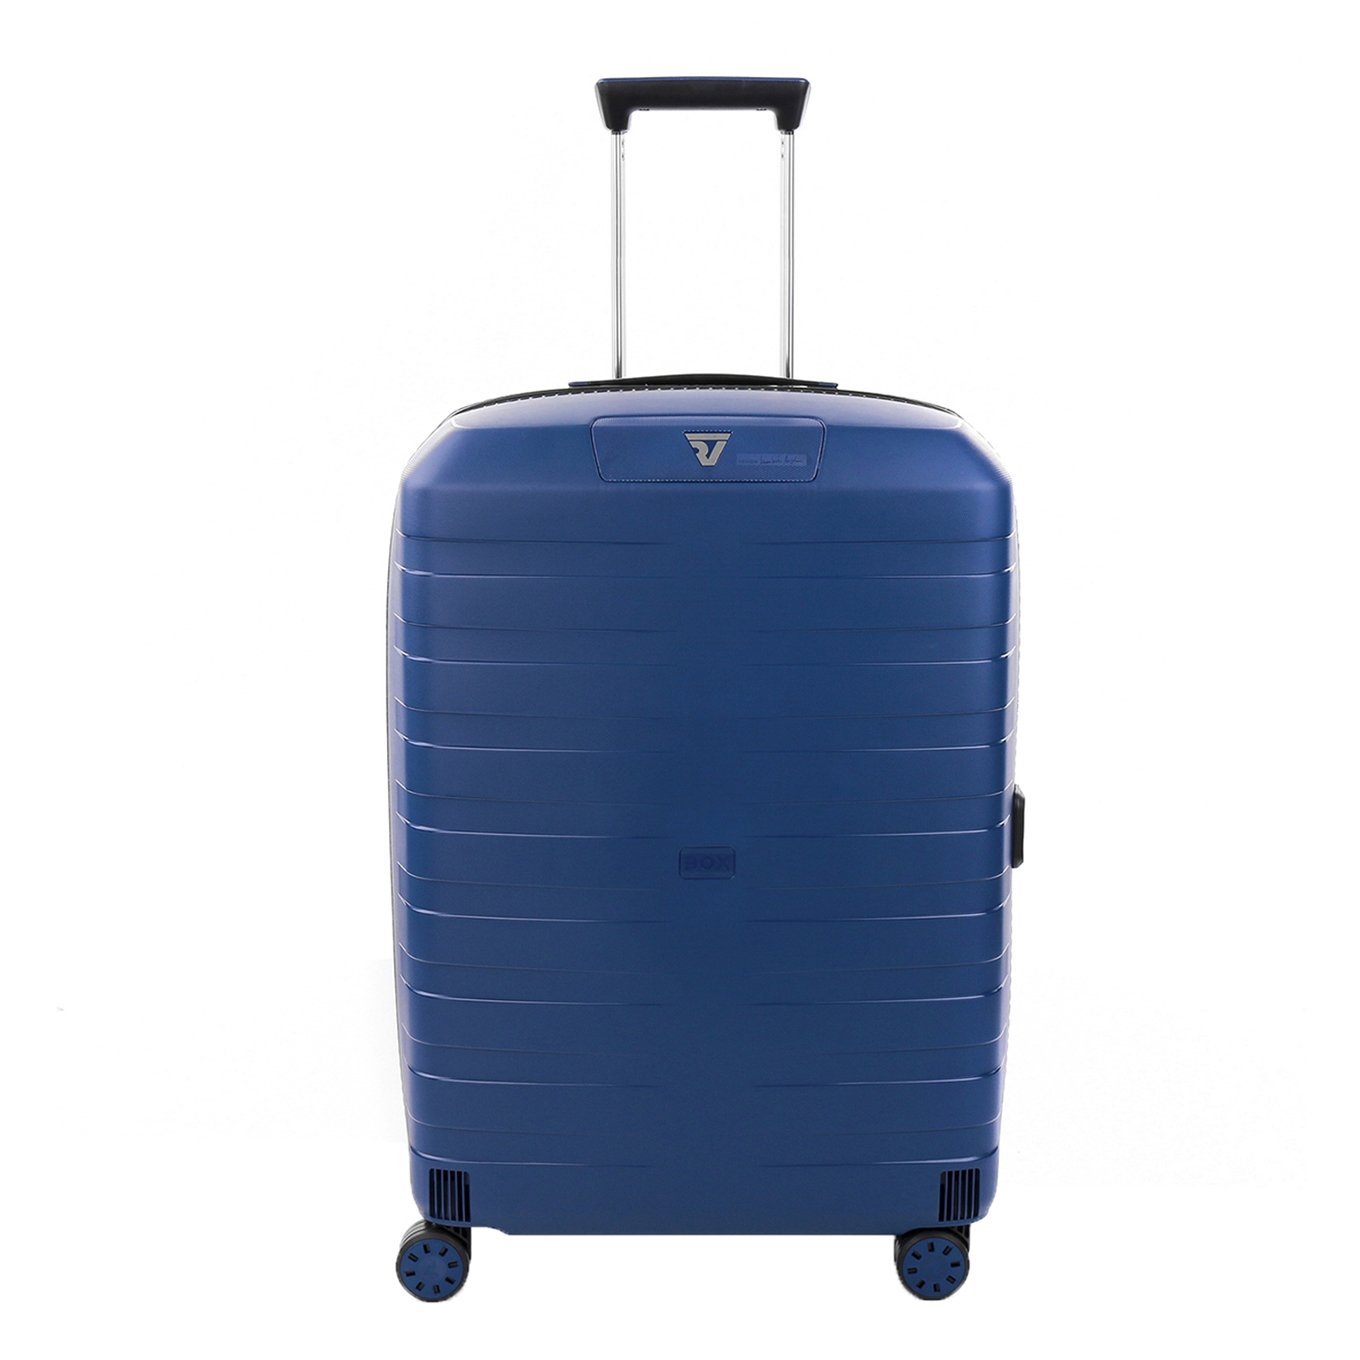 Roncato Box 4.0 Medium 4 Wiel Trolley 69 navy Harde Koffer <br/></noscript><img class=